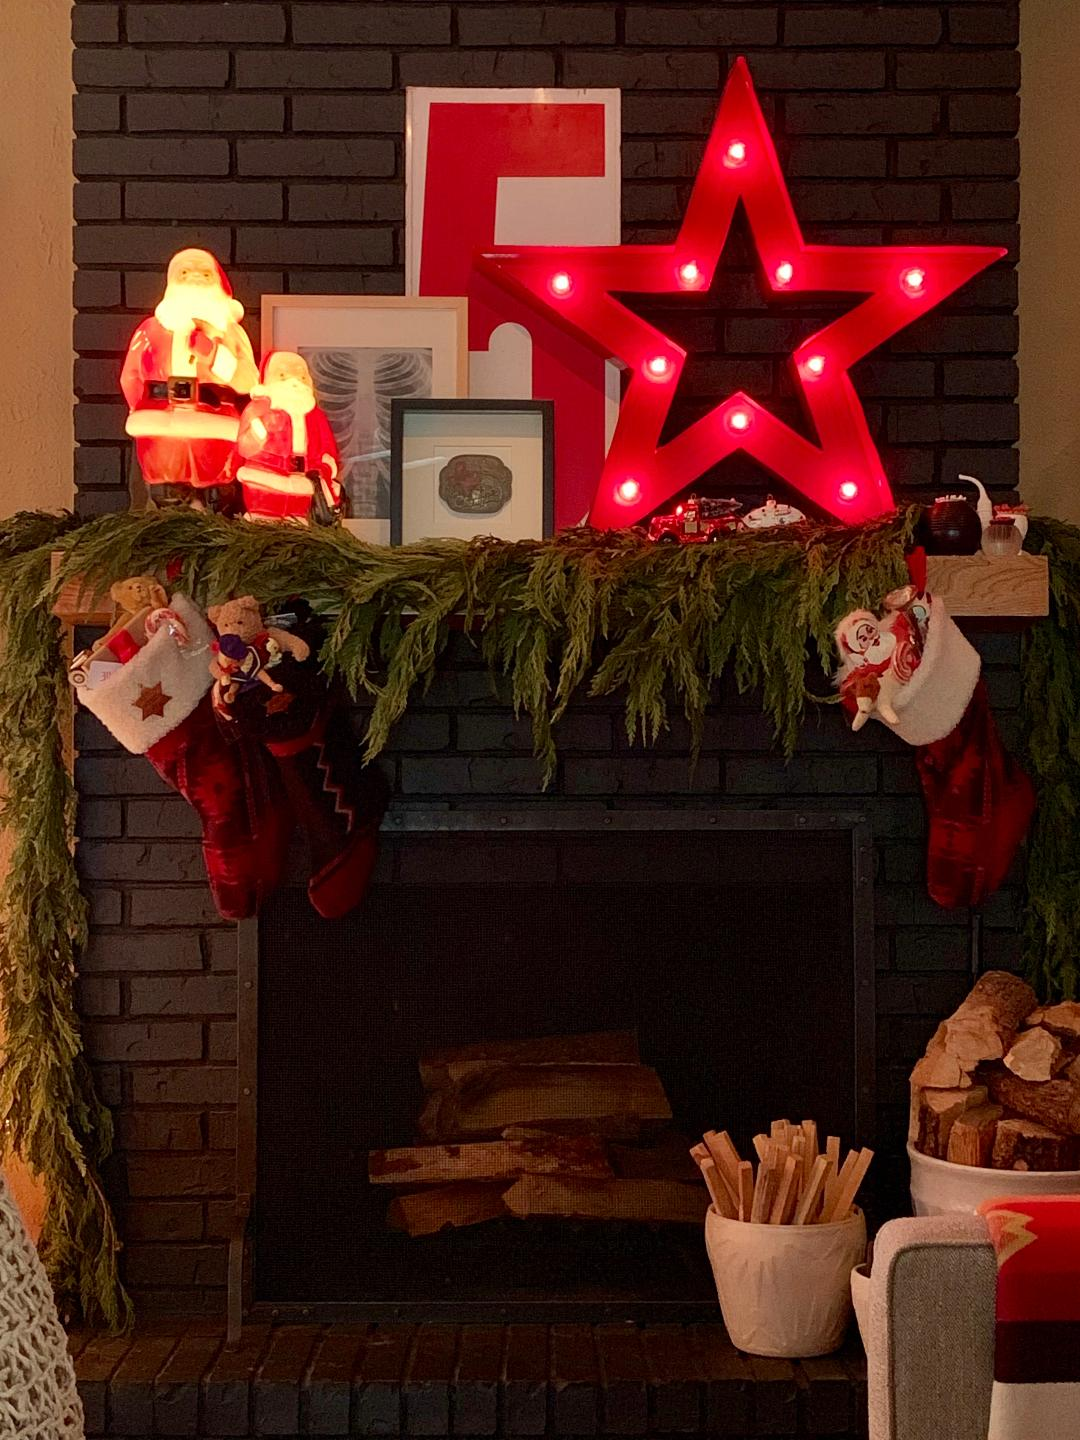 Love this Christmas mantel with Santa blow molds and star marquee light #mantel #christmasmantel #christmasdecor #vintagechristmas #blowmolds #christmasblowmolds #santa